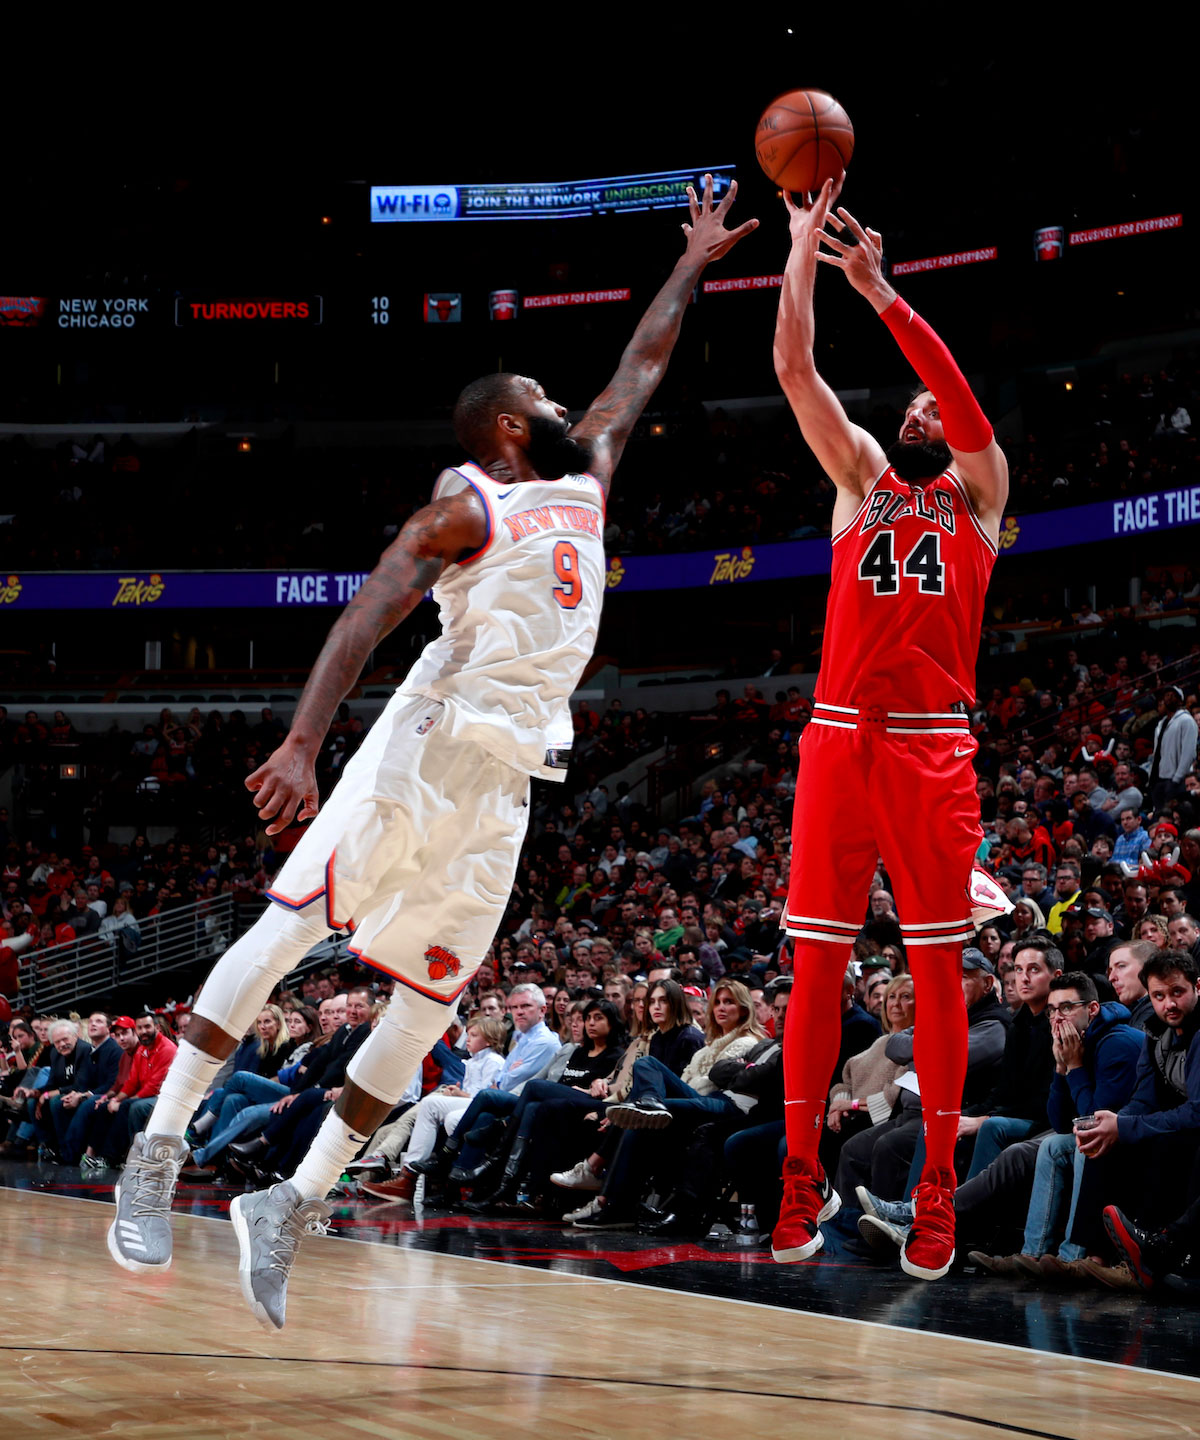 Nikola Mirotic #44 of the Chicago Bulls shoots the ball against the New York Knicks on December 9, 2017 at the United Center in Chicago, Illinois.